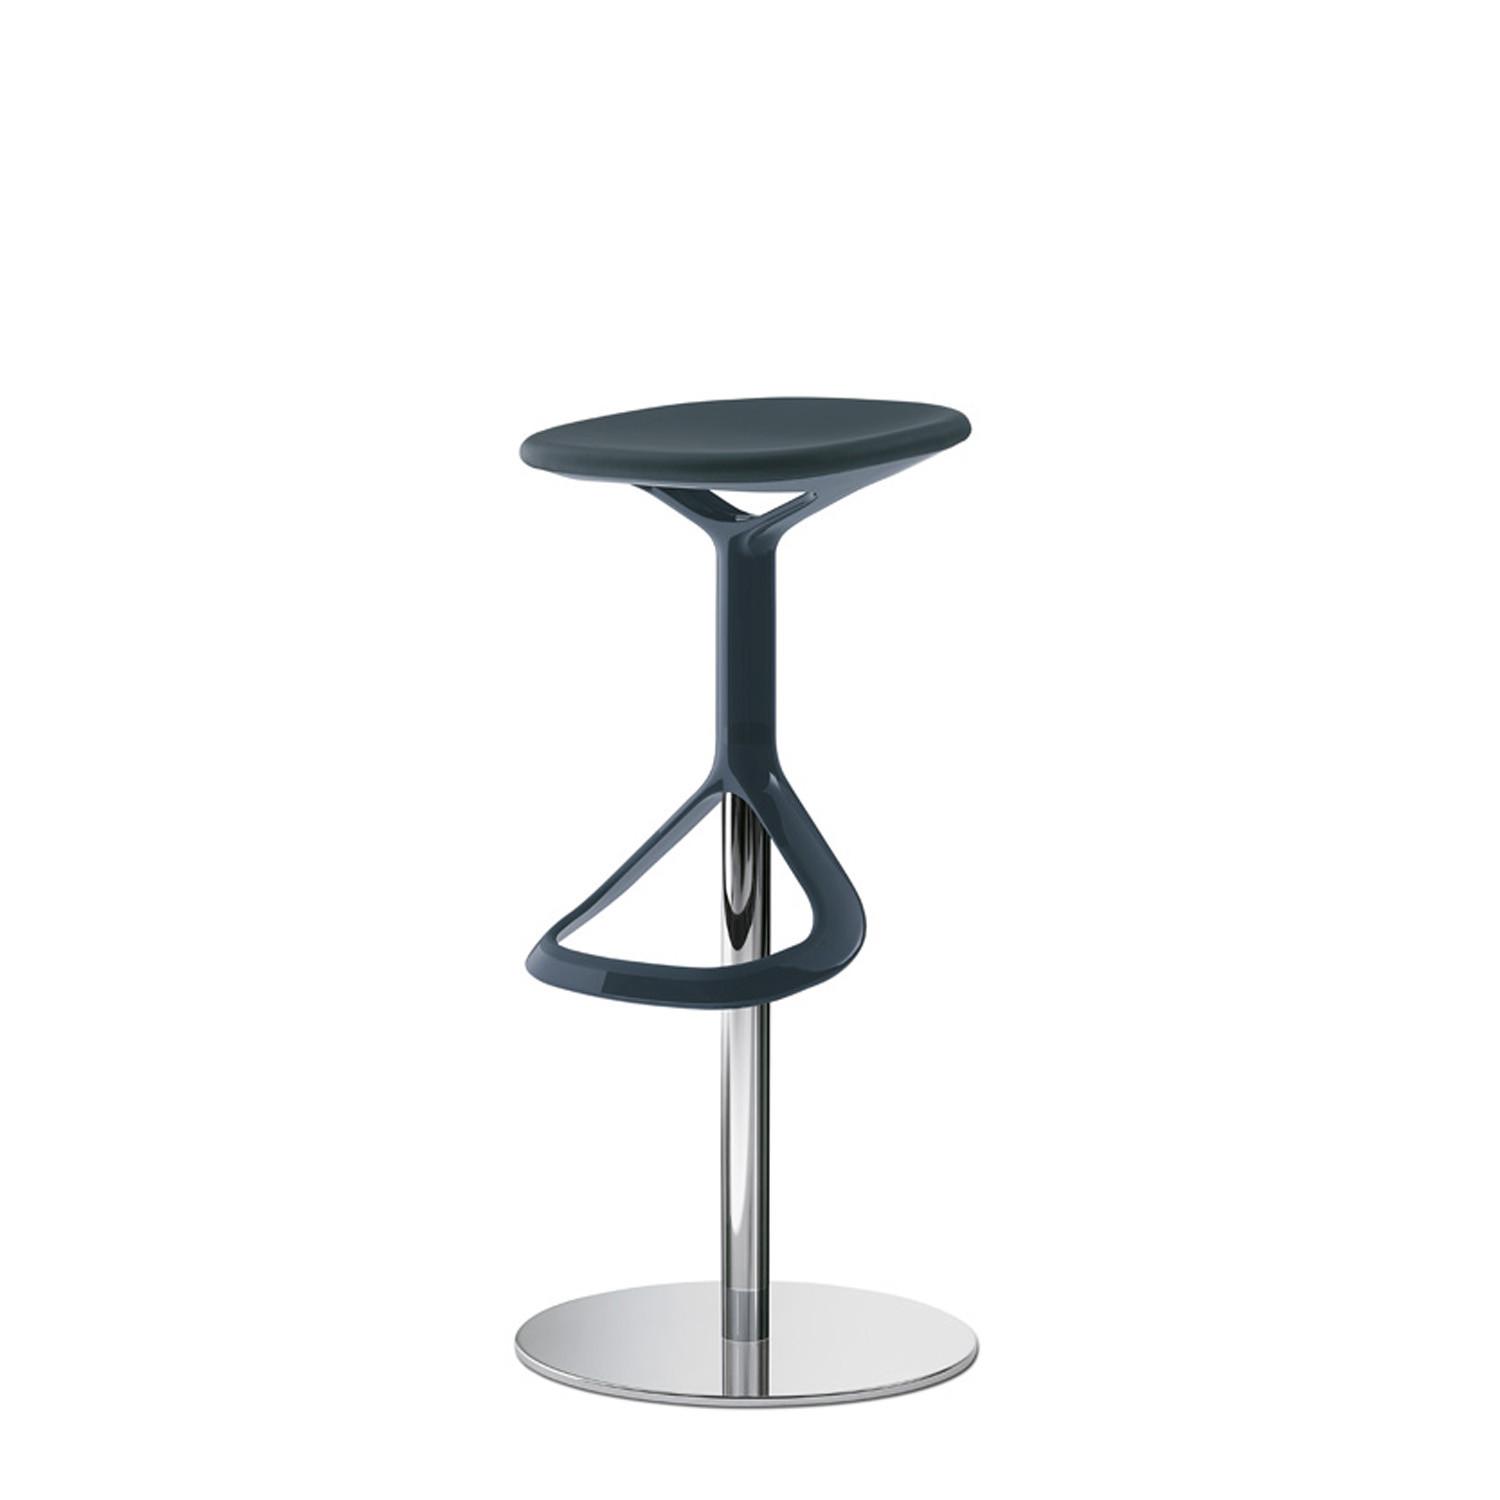 Lox Height Adjustable Bar Stool